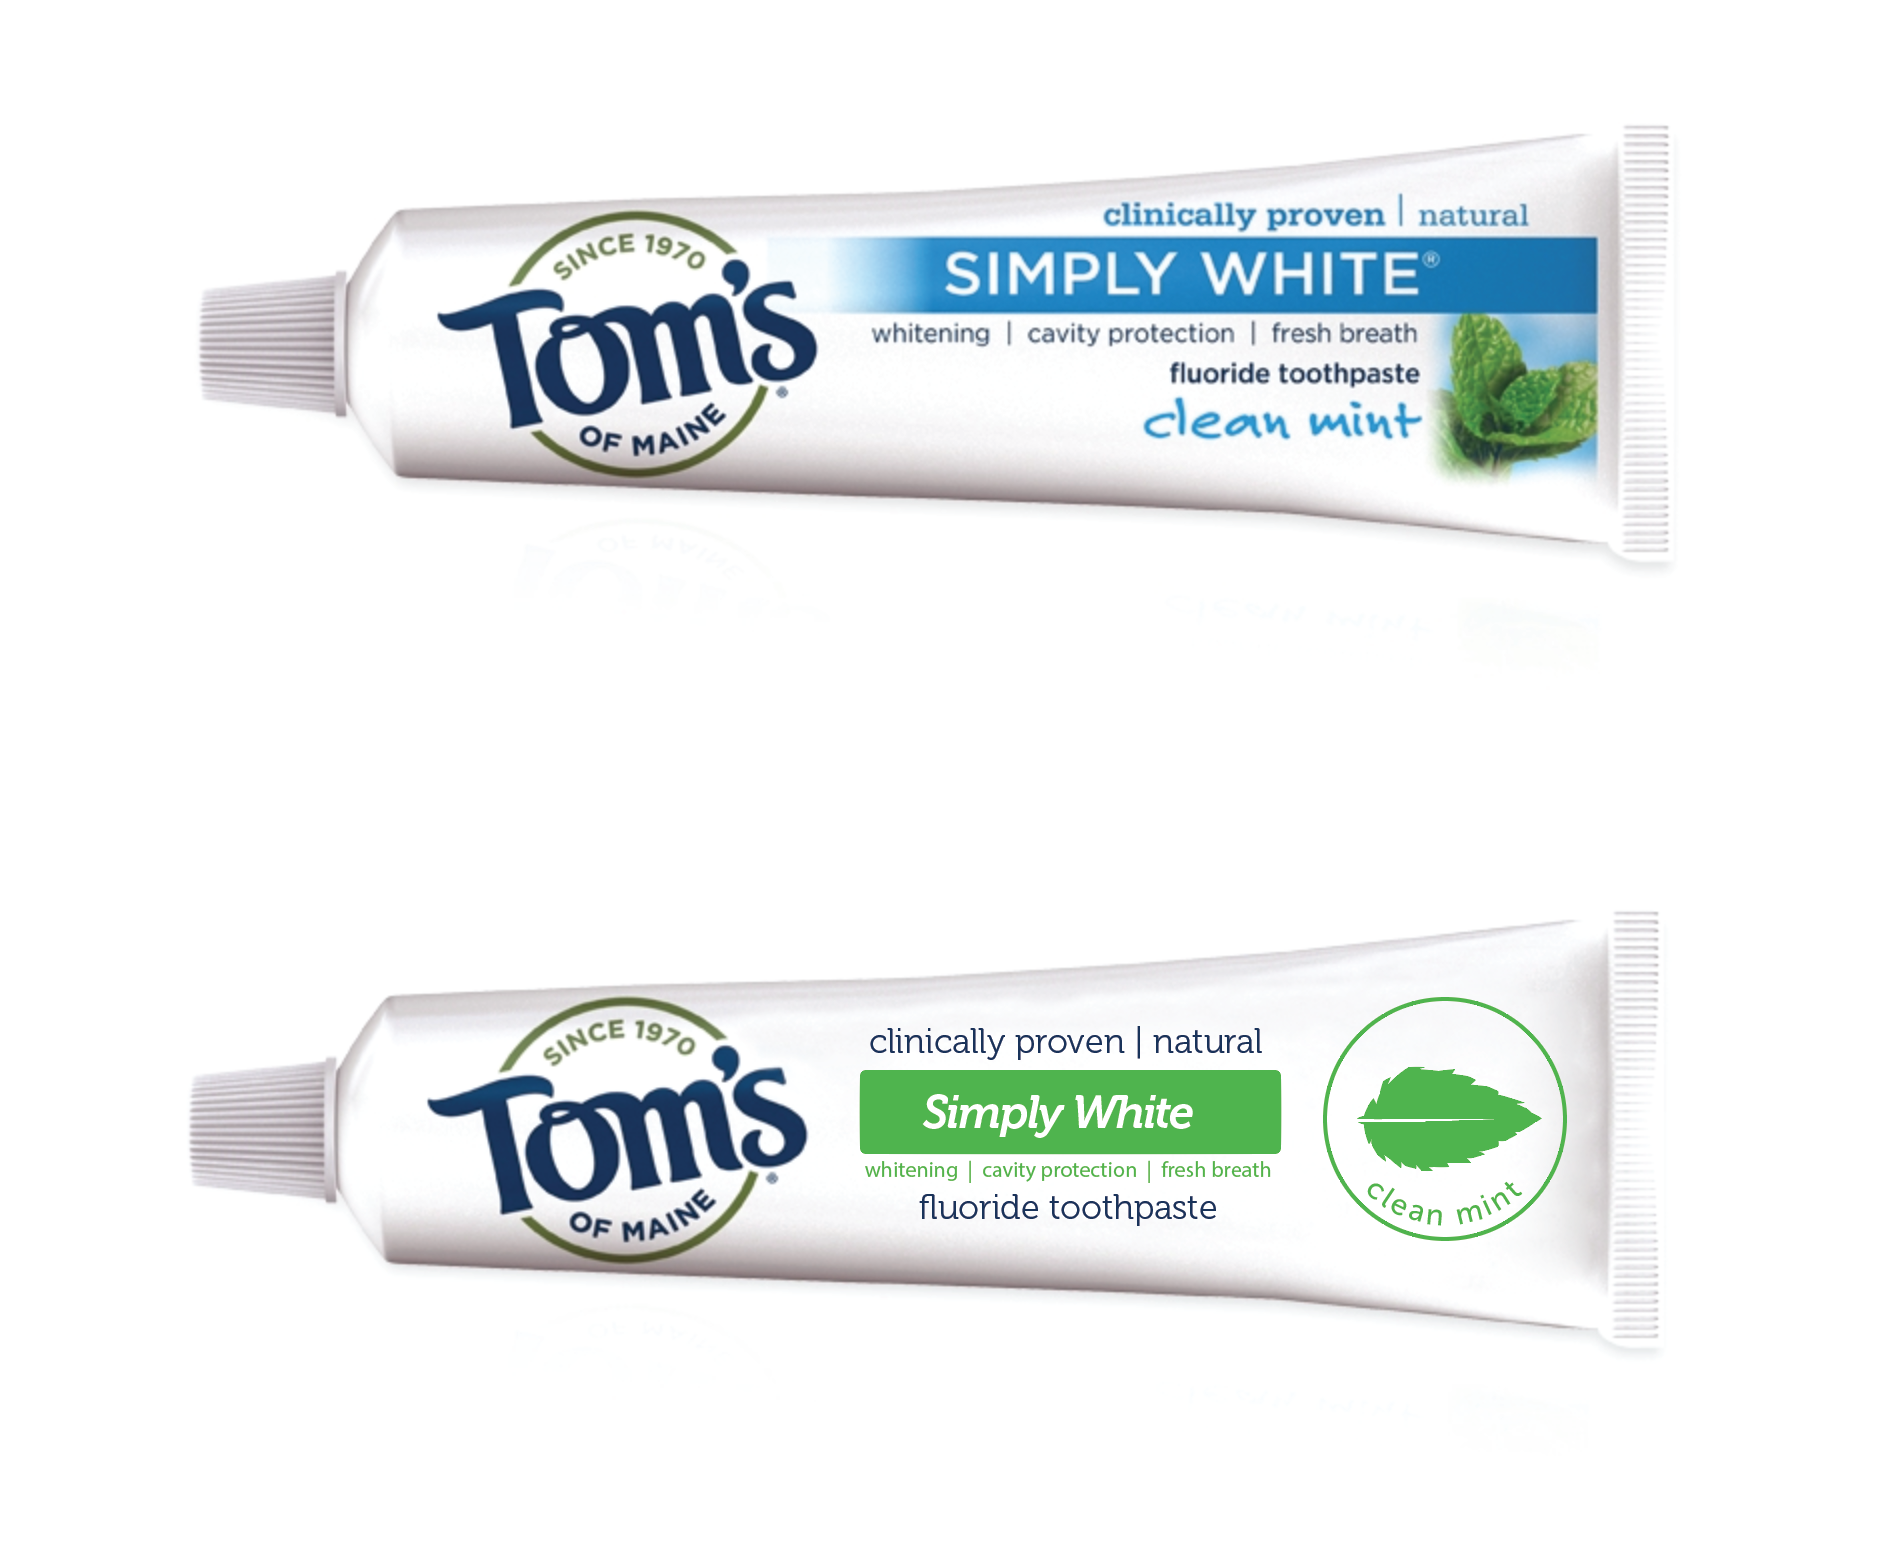 Toms of Maine Packaging - redesigned